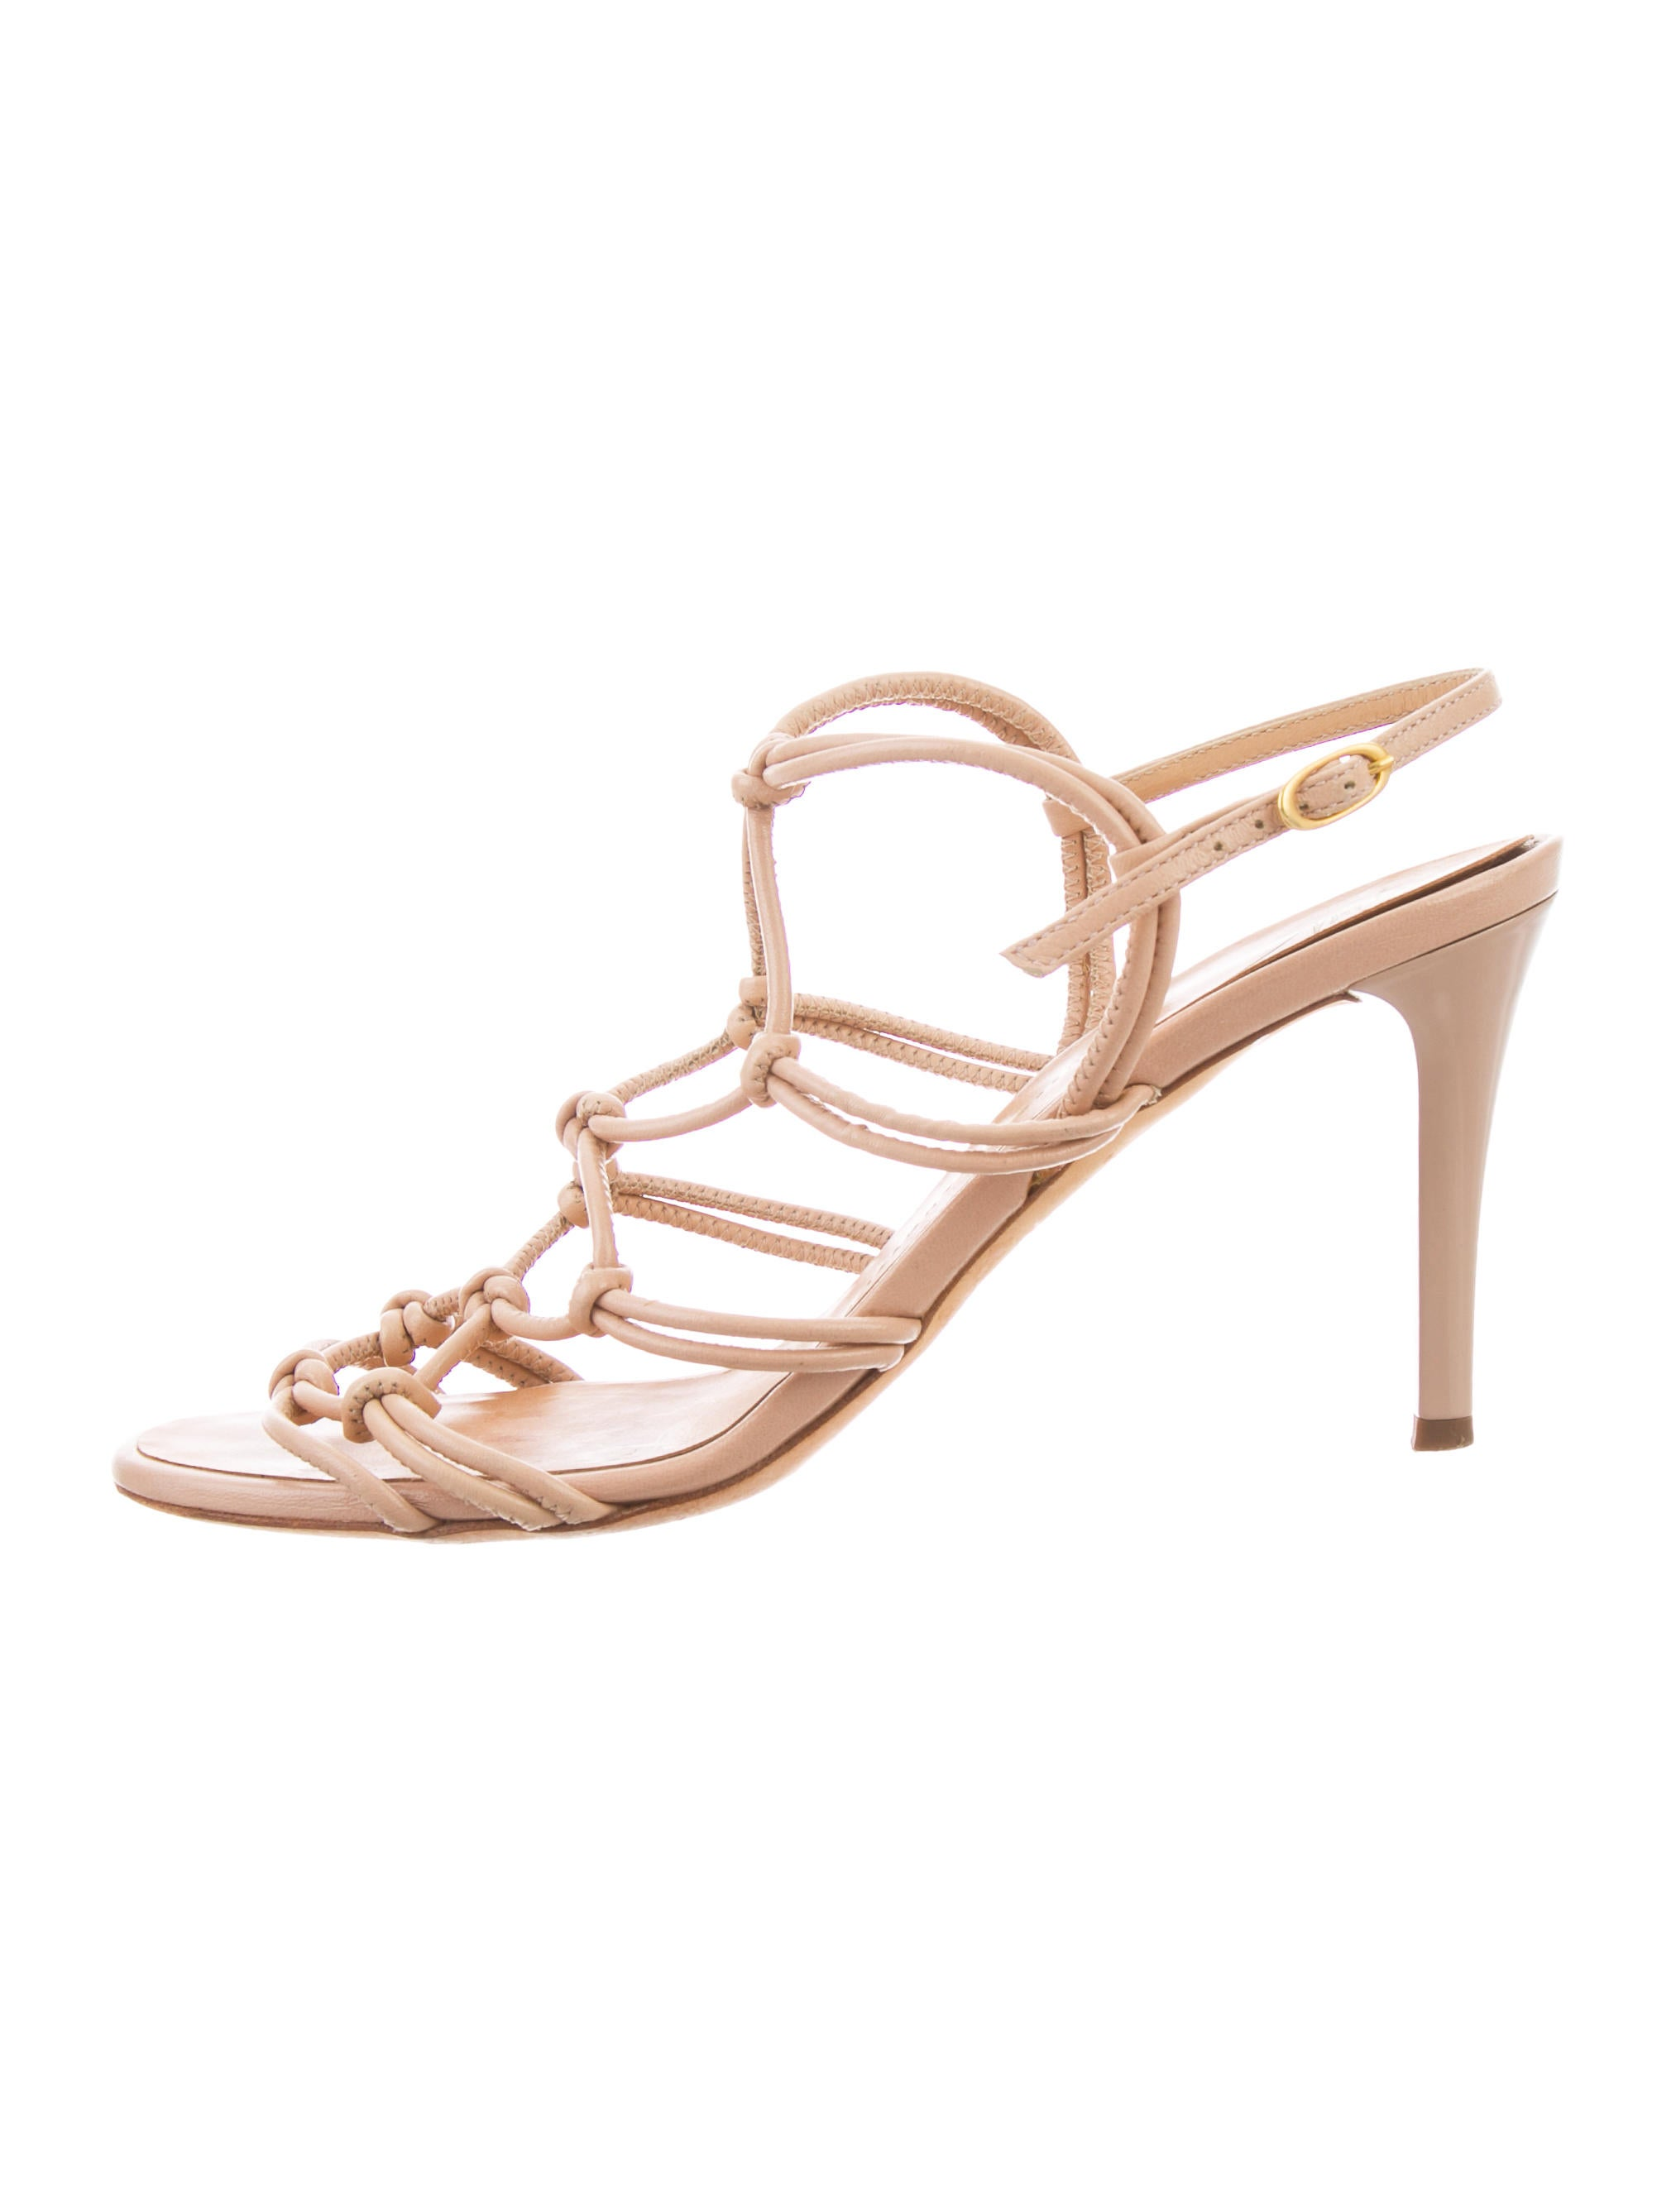 really cheap Giuseppe Zanotti Multistrap Knot Sandals discount footaction LXqRV